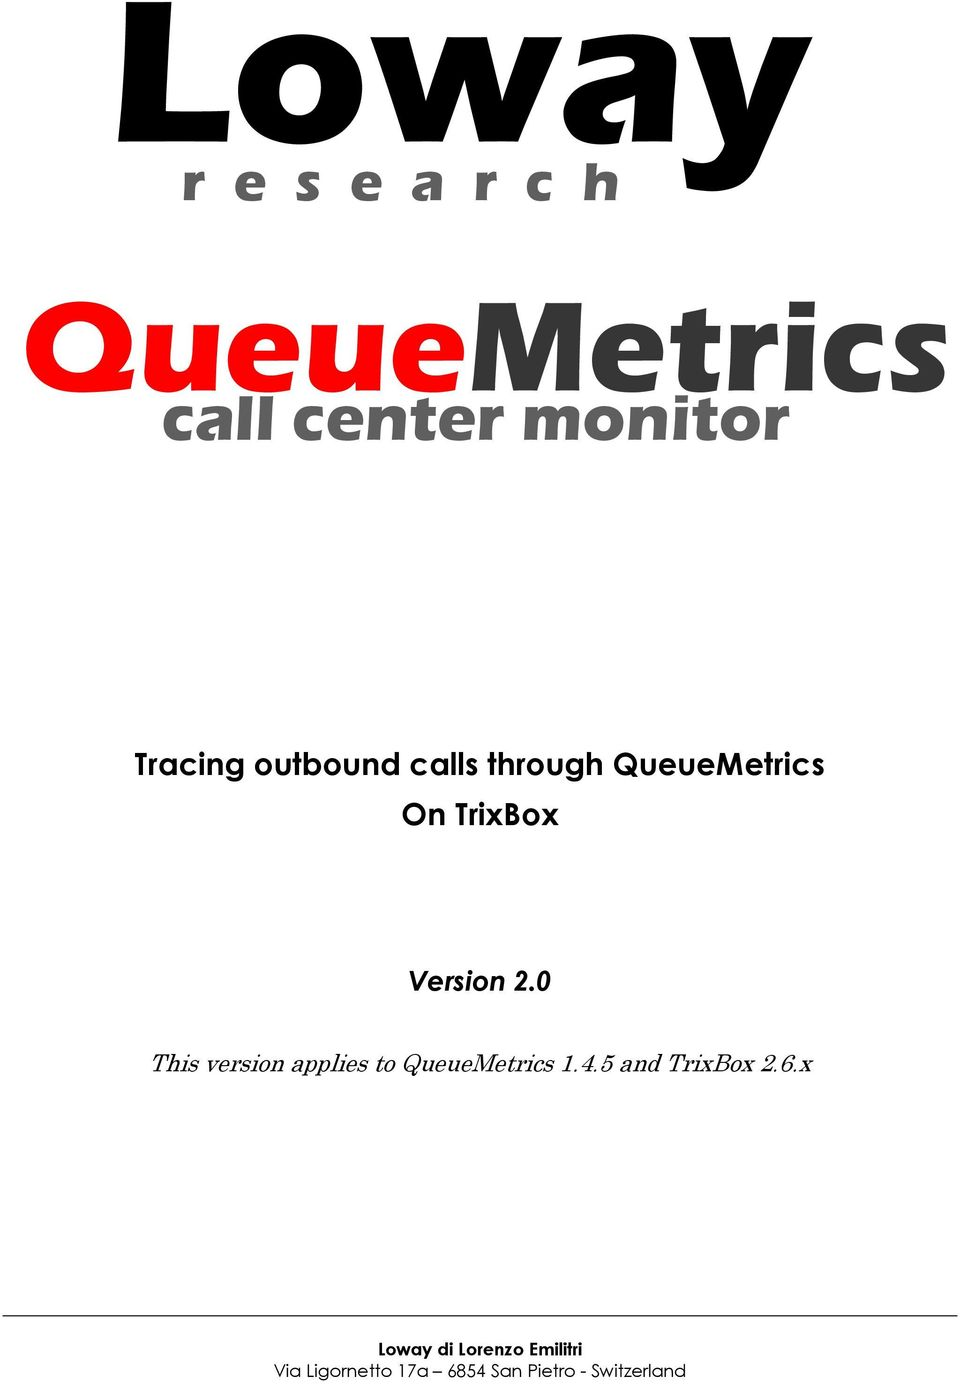 0 This version applies to QueueMetrics 1.4.5 and TrixBox 2.